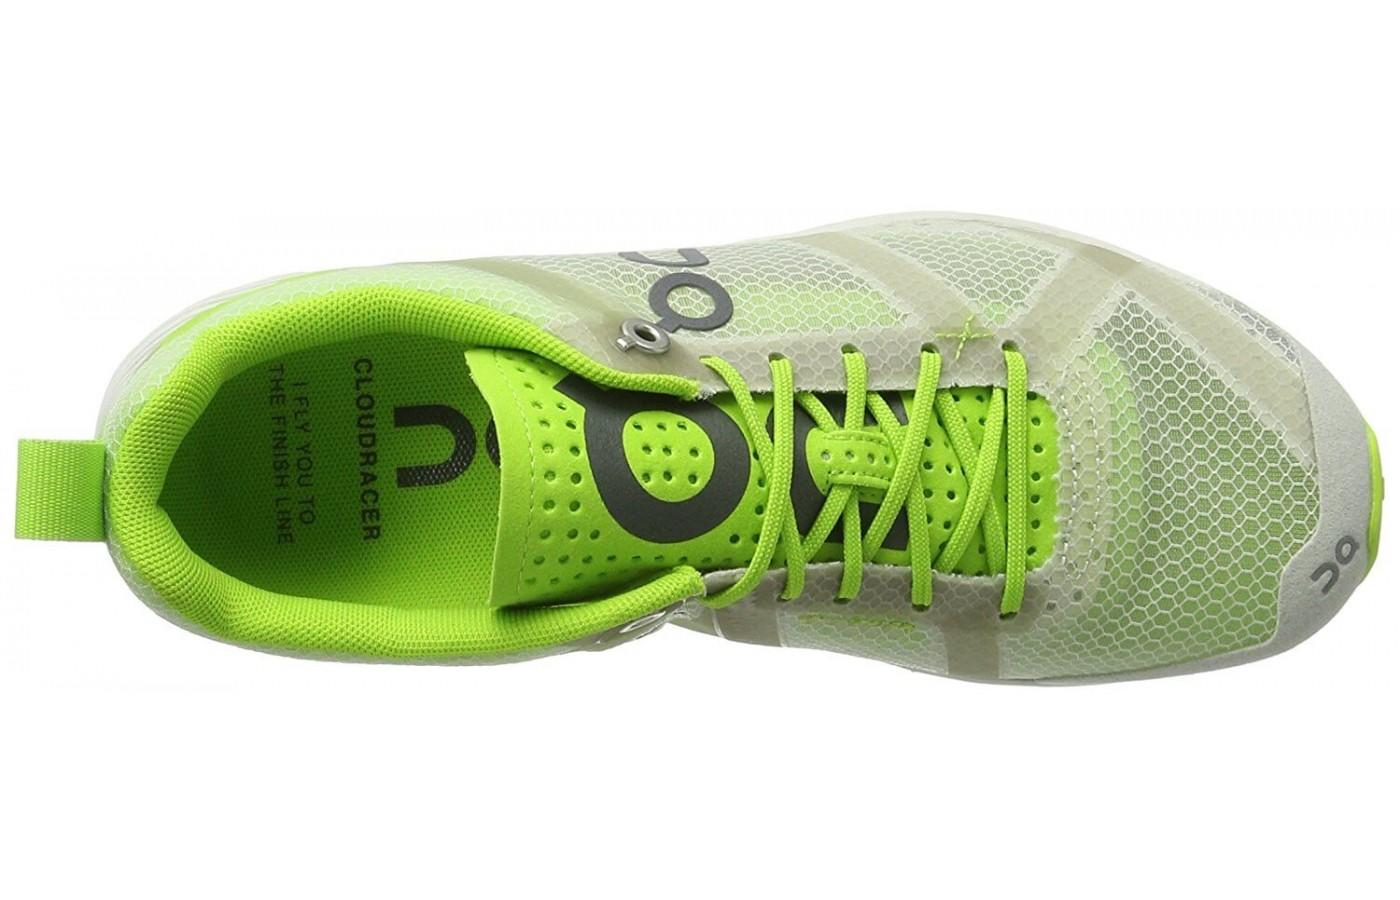 a look at the breathable mesh upper on the Cloudracer